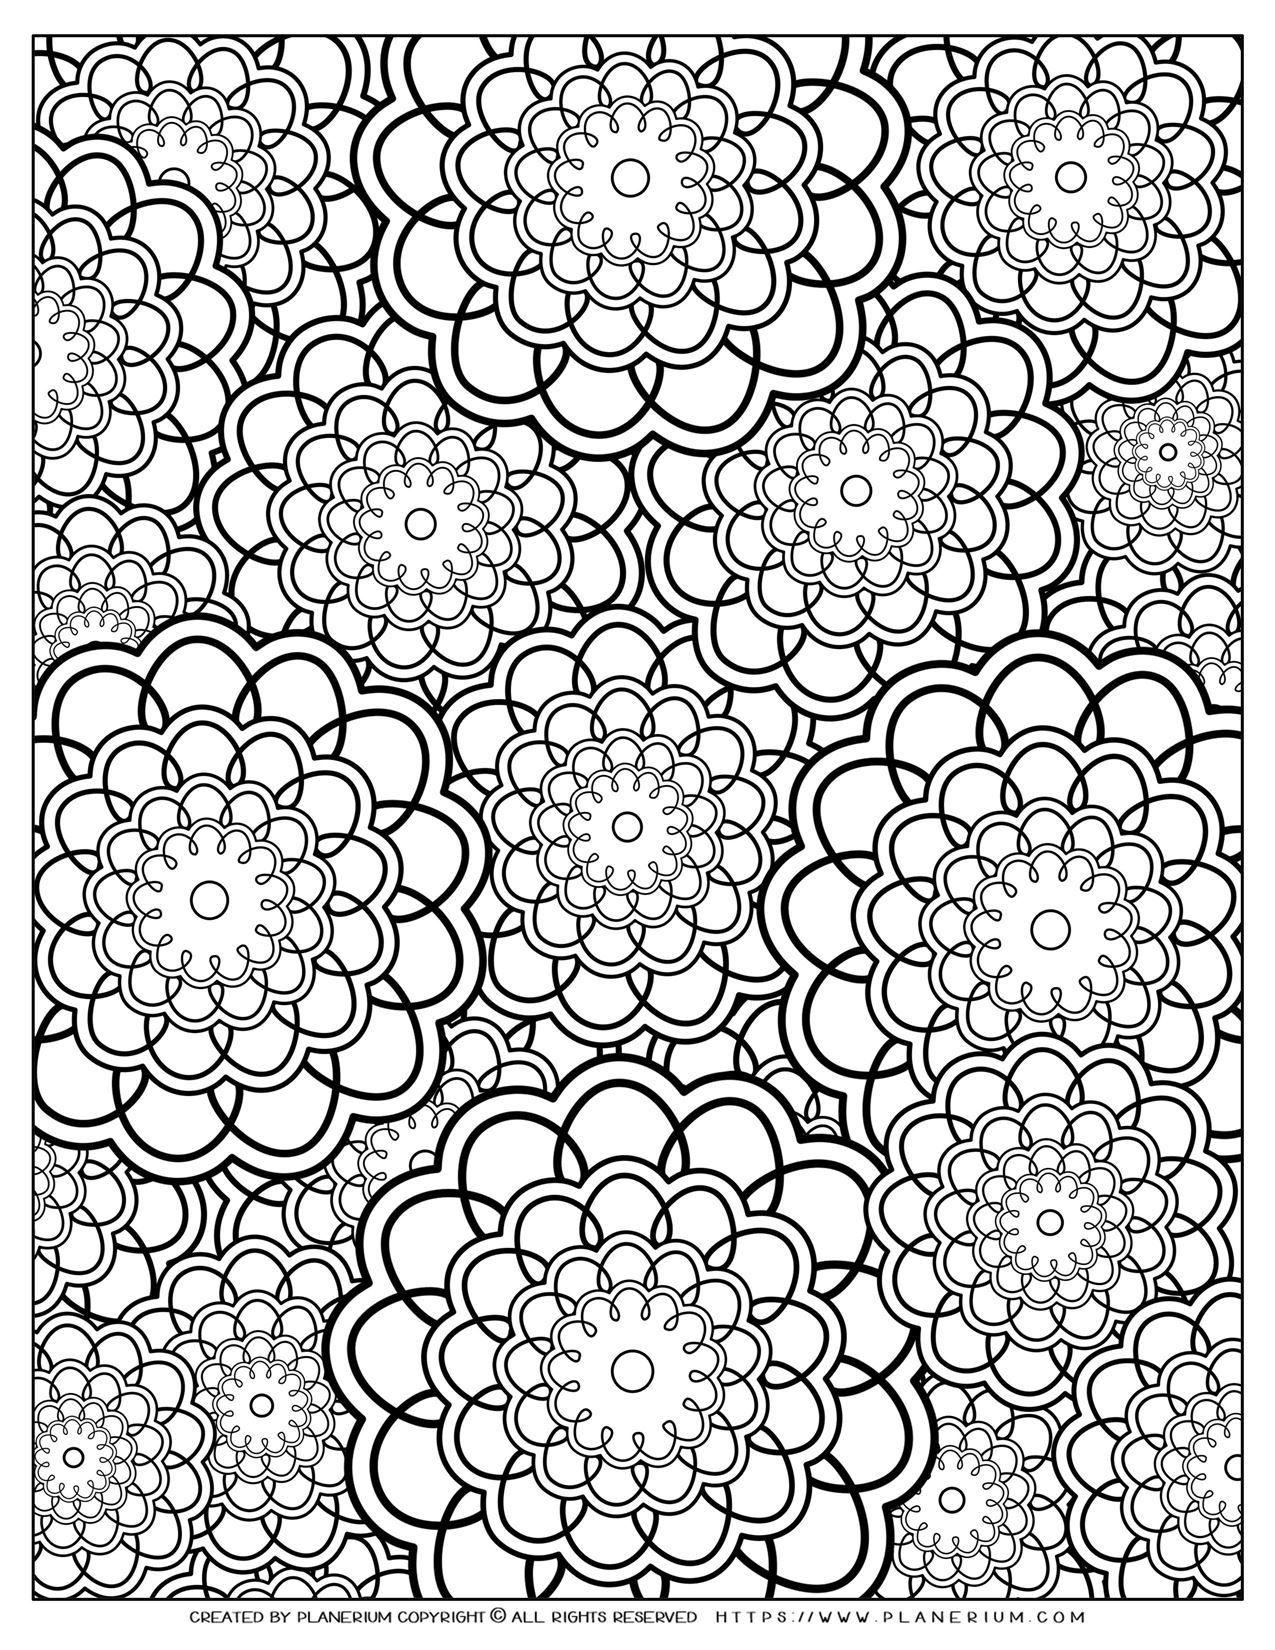 Adult Coloring Pages with Flowers Circles Layers | Planerium